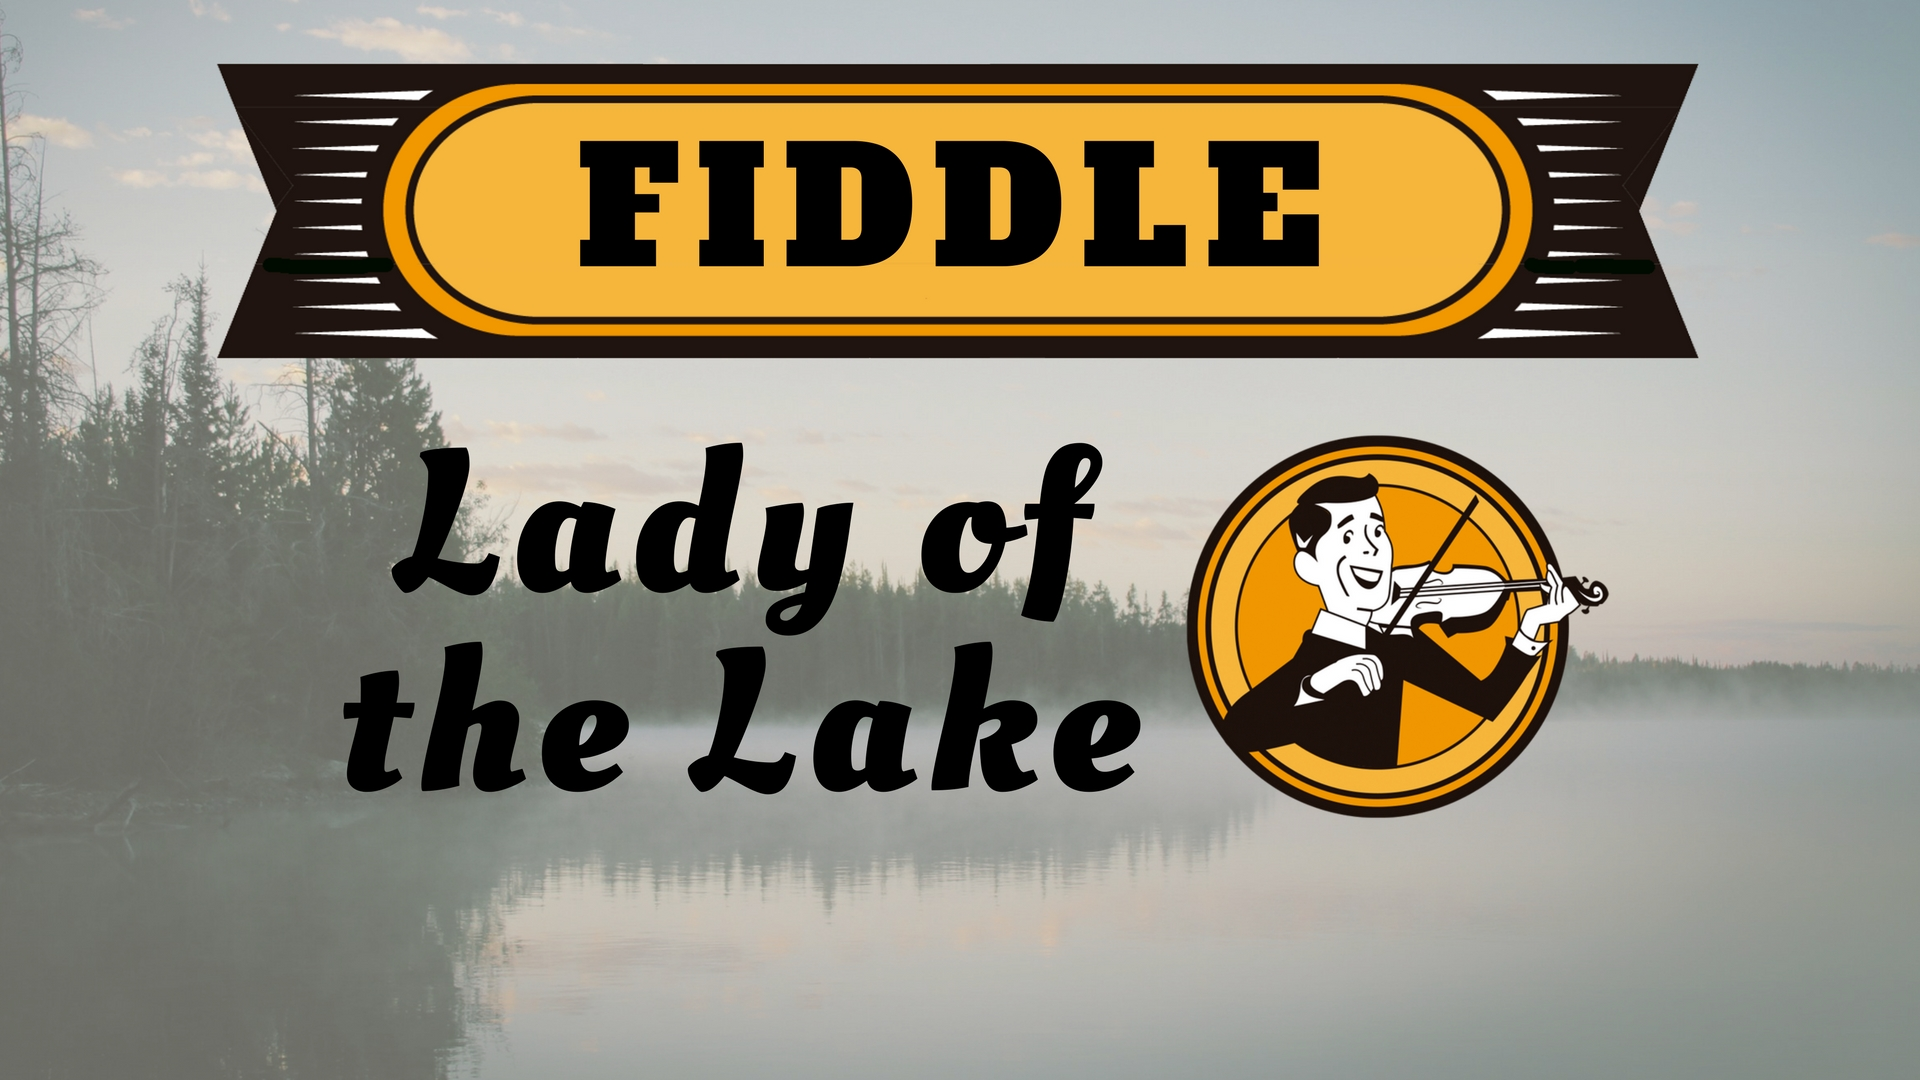 Fiddle Lady of the lake